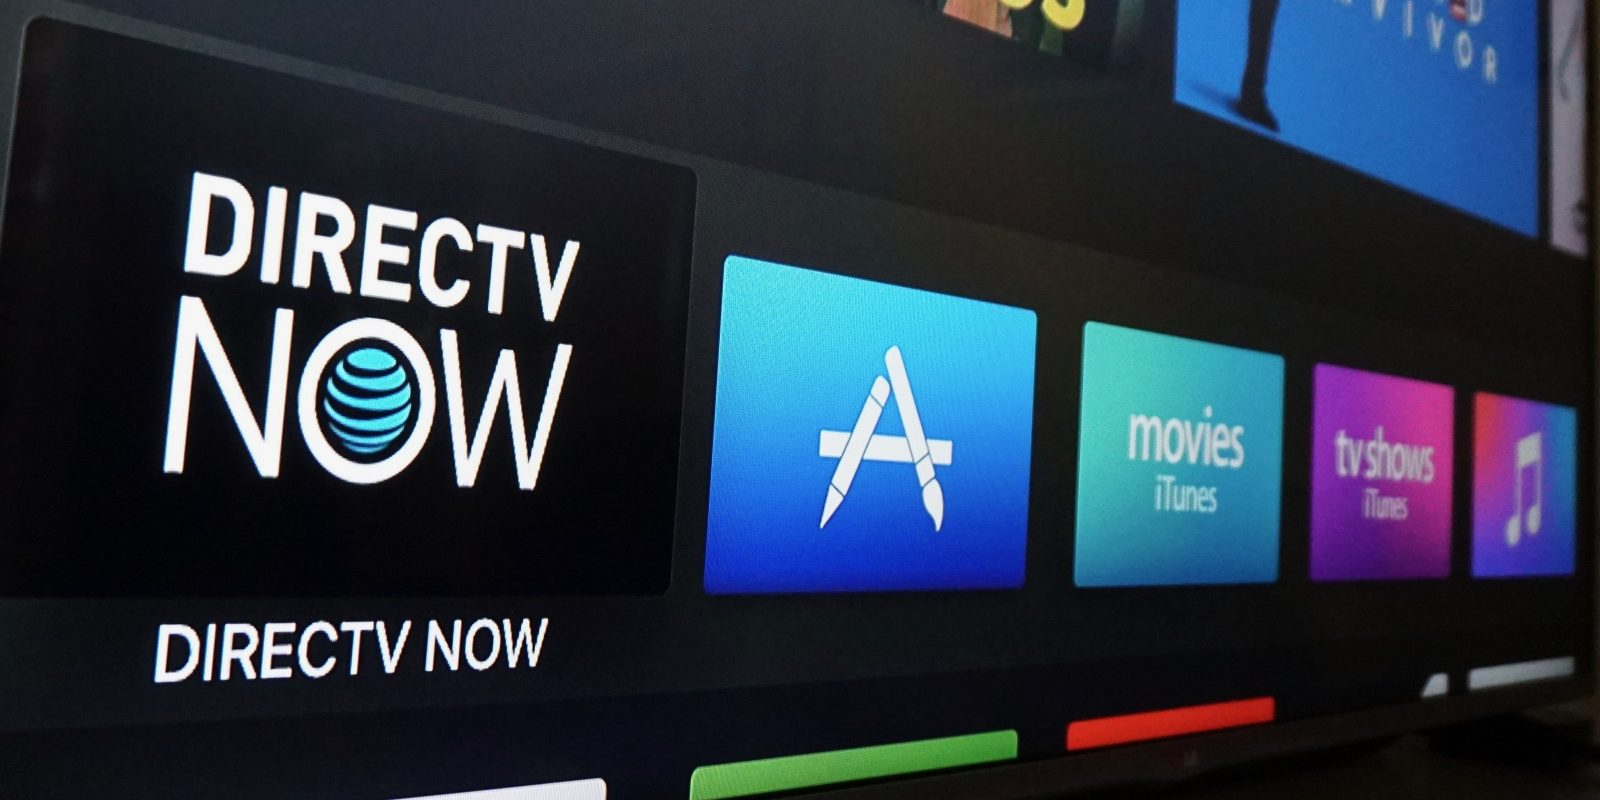 DirecTV Now offers a FREE Apple TV 4K when you sign-up for 4